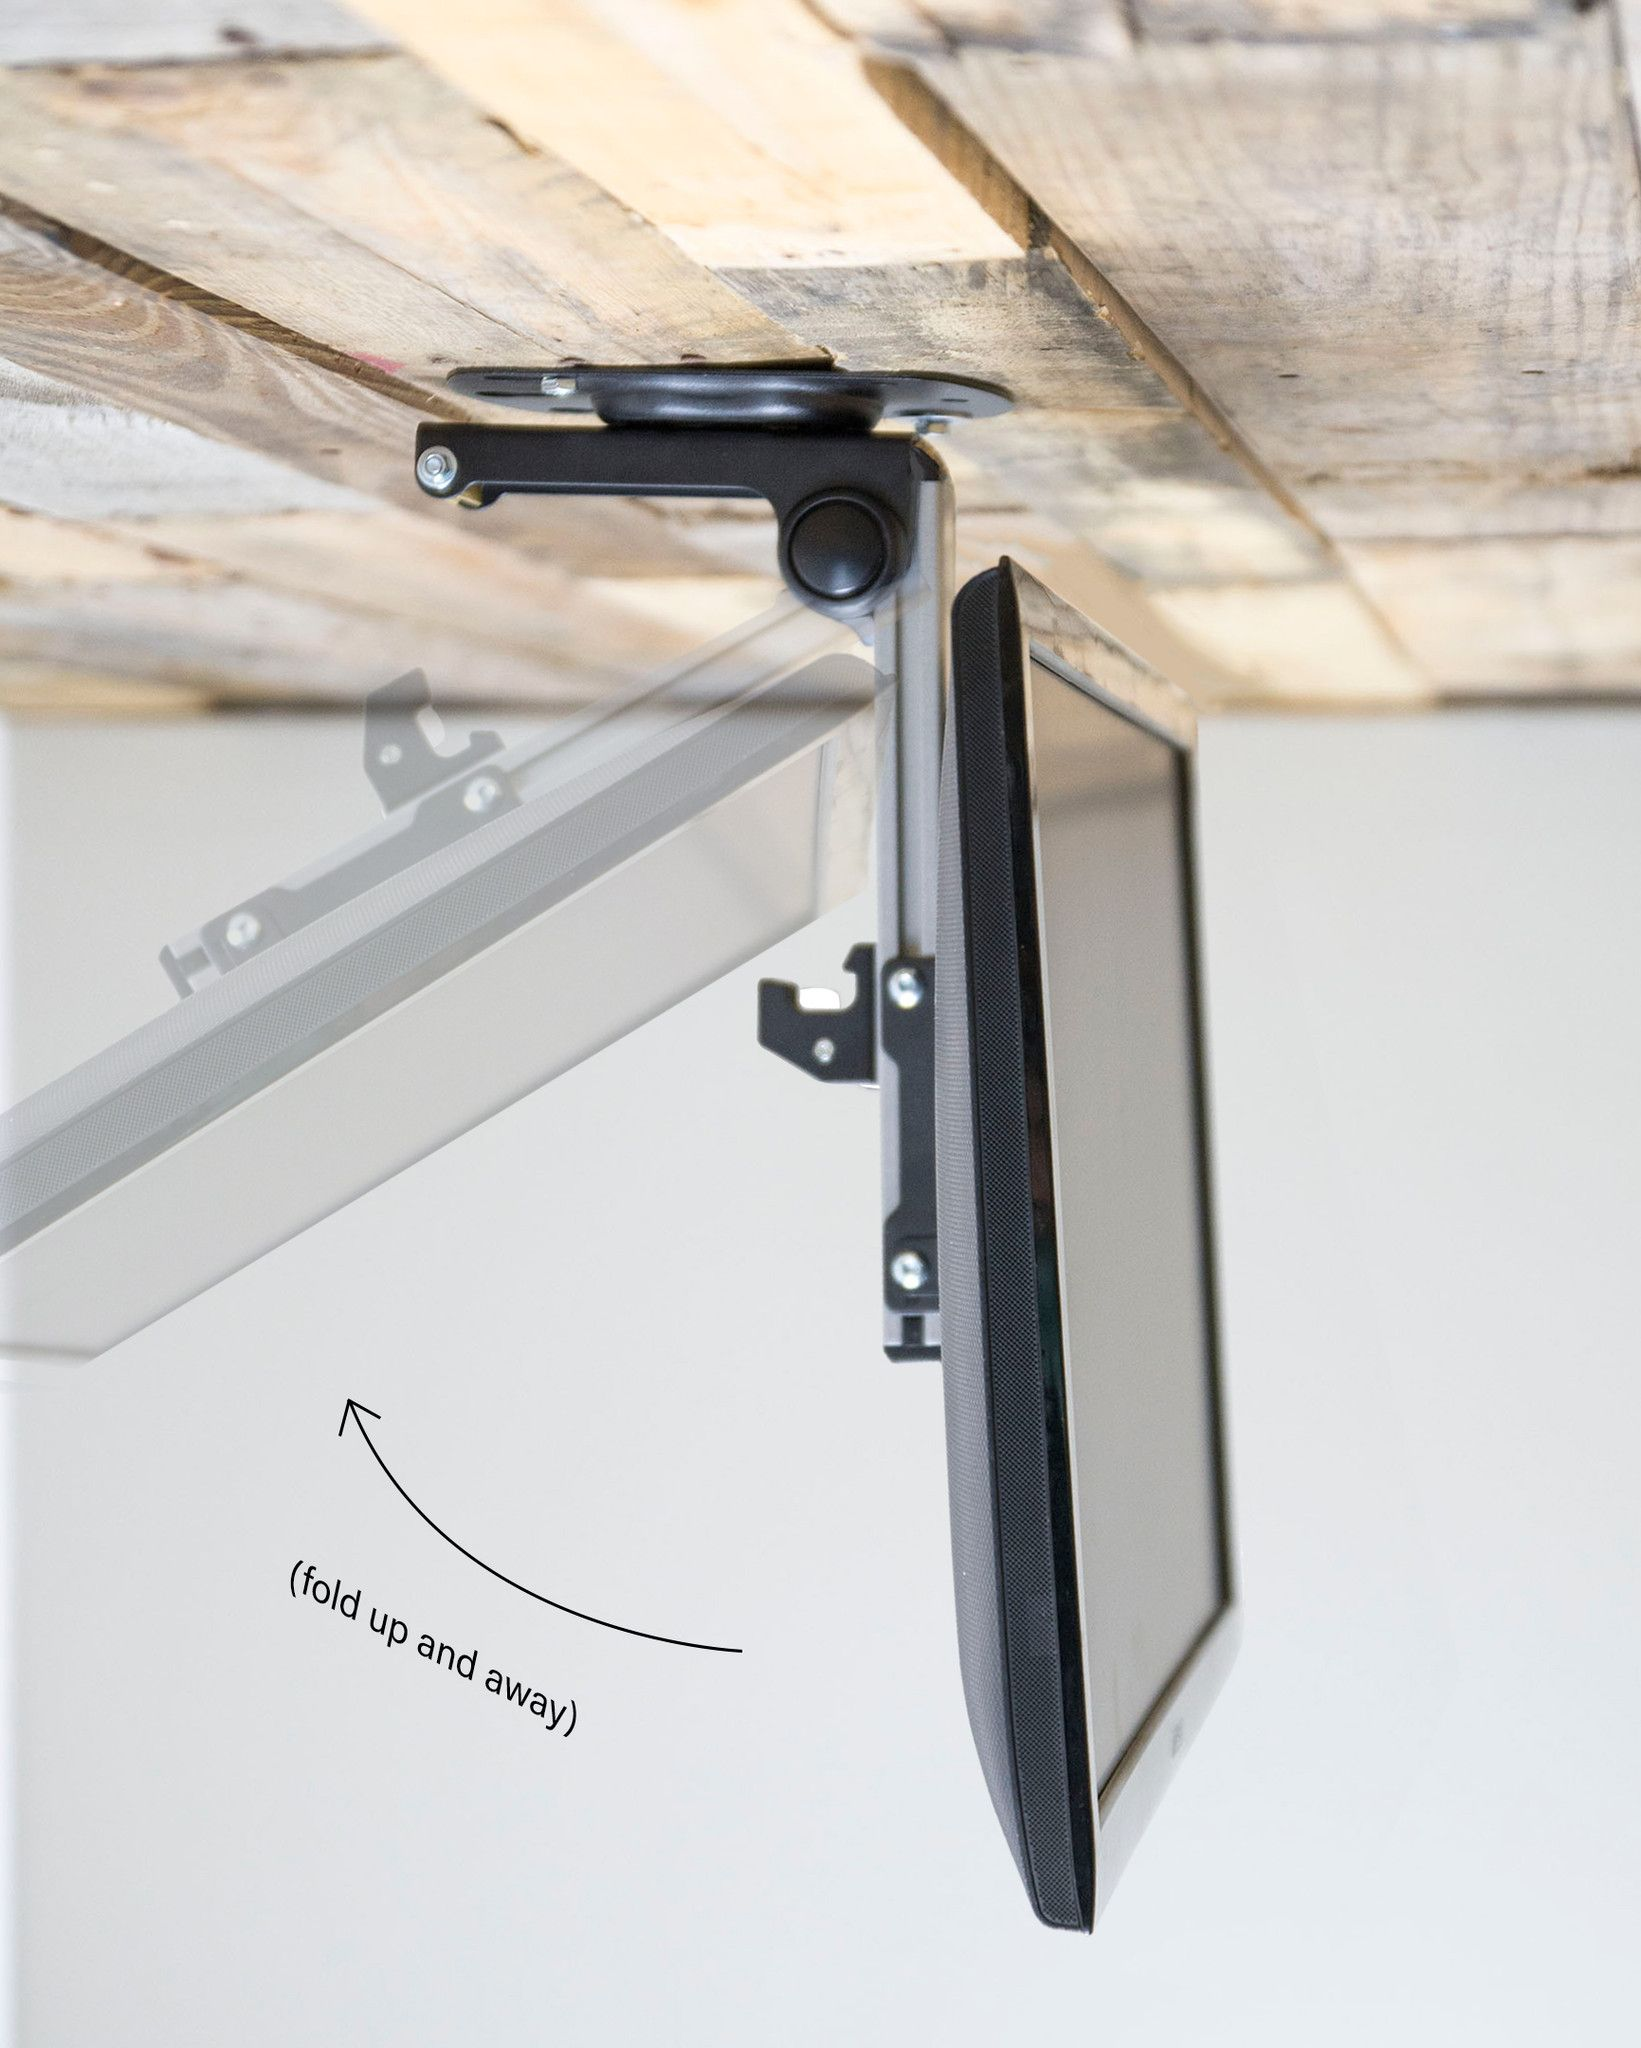 VIVO Folding Pitched Roof Ceiling Mount for LCD Flat TV and ...